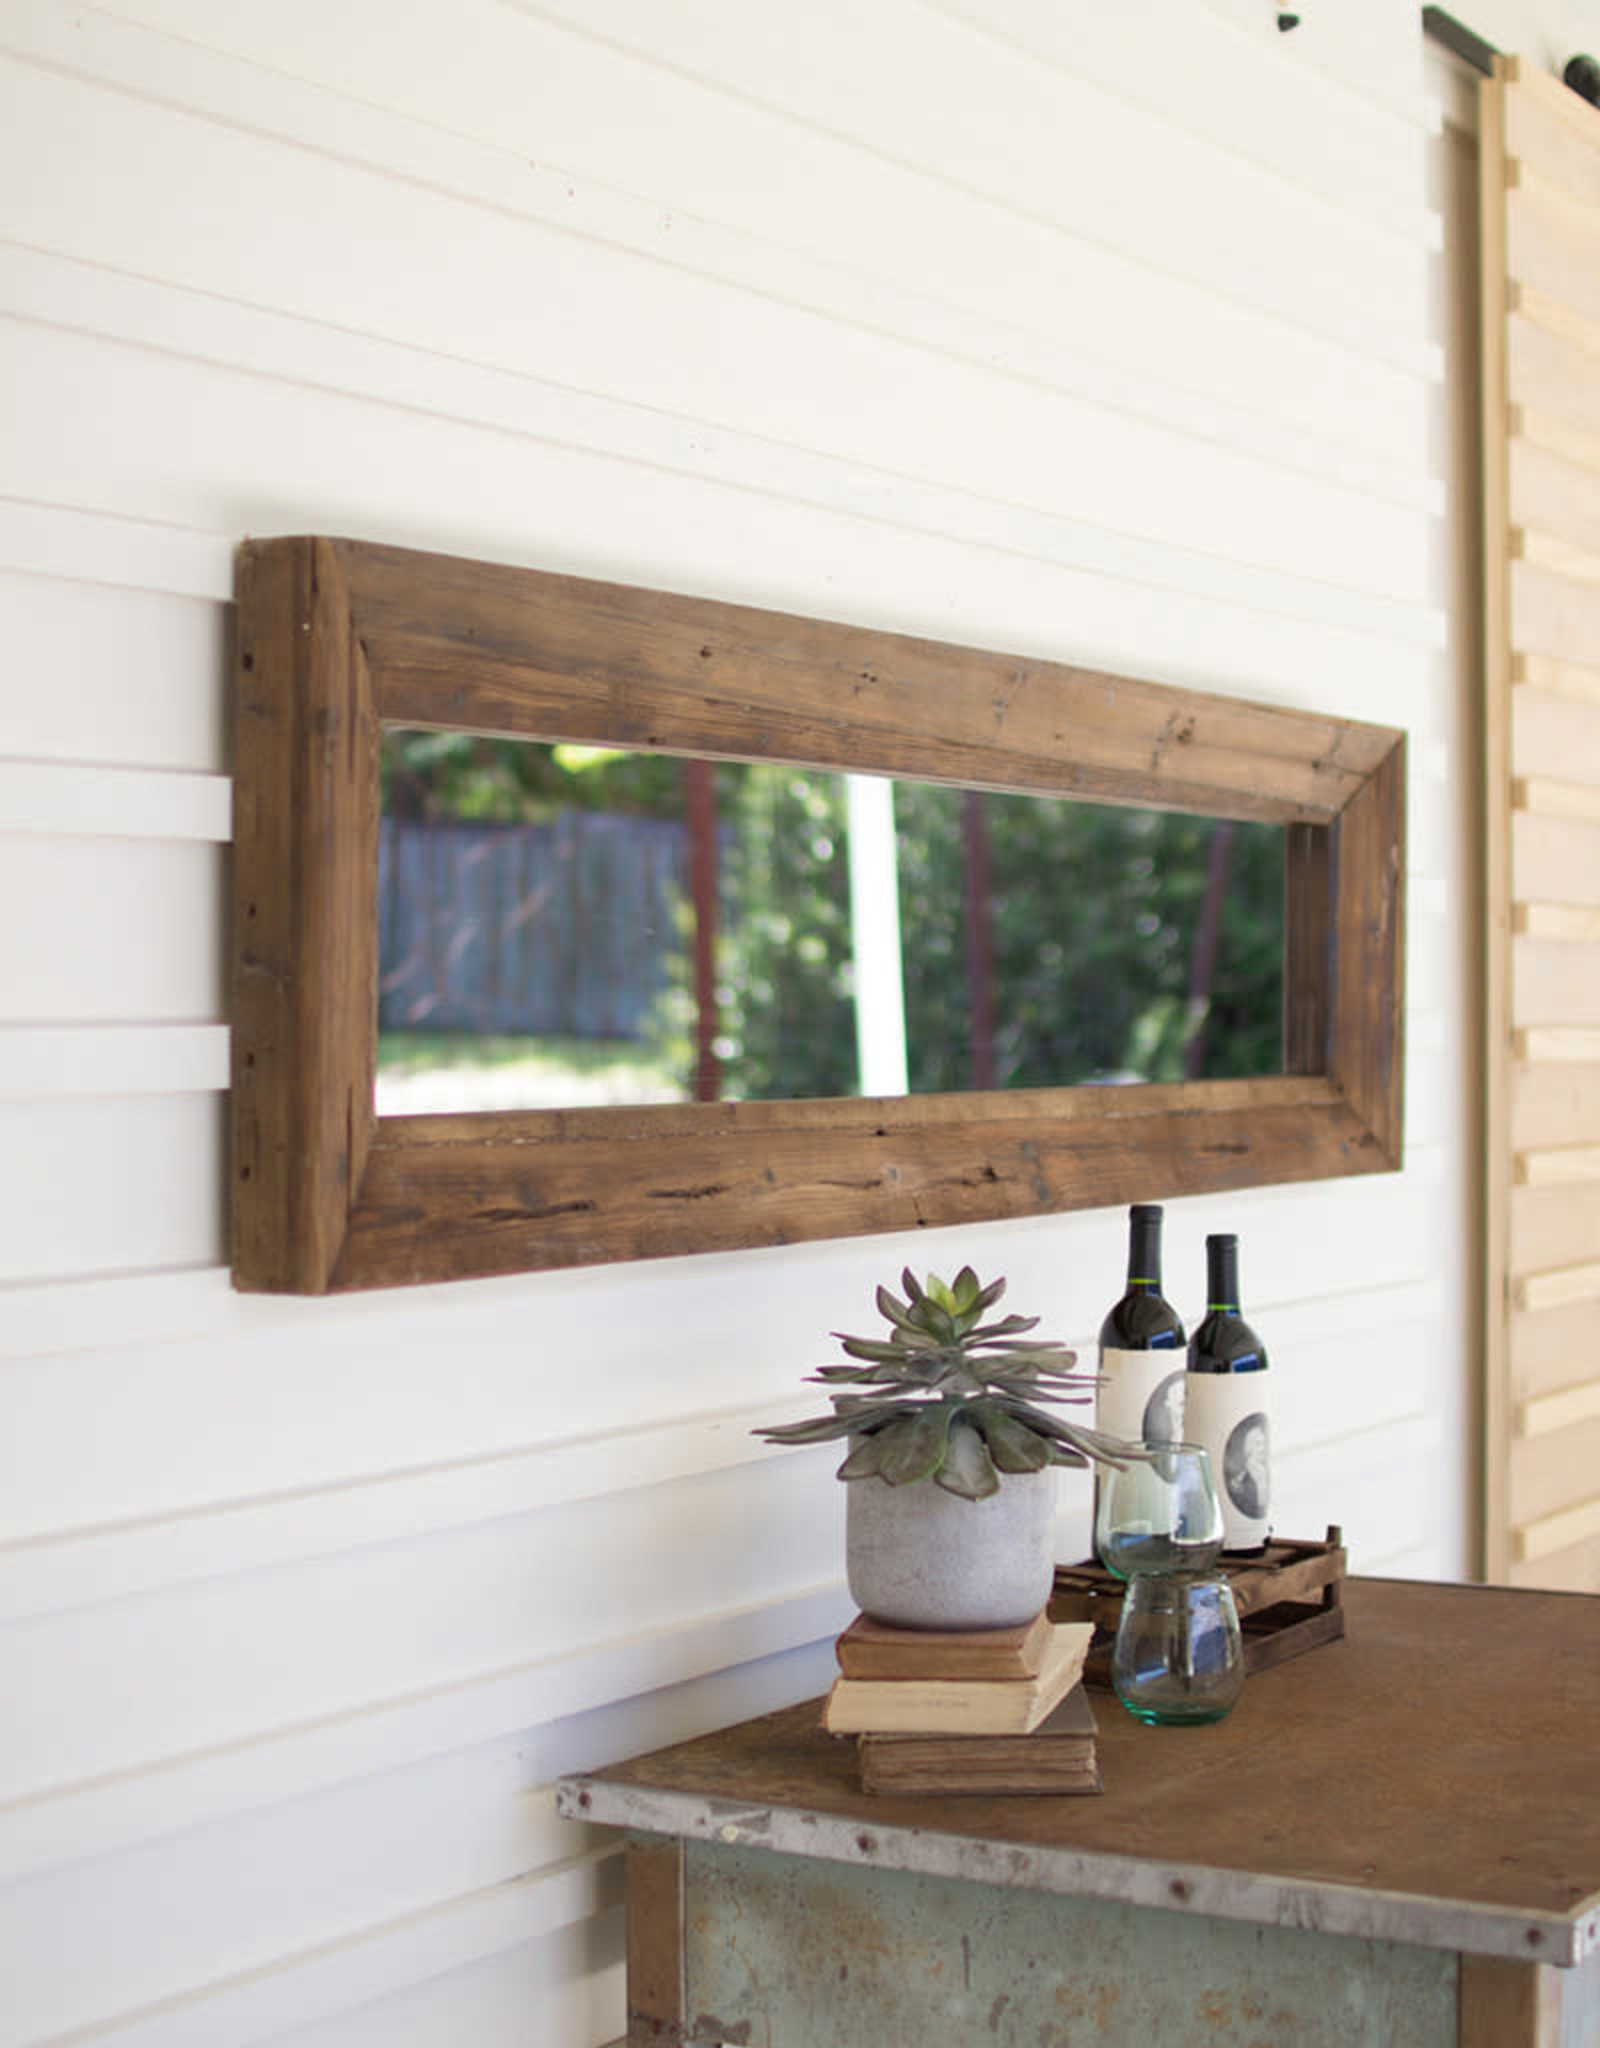 Kalalou Long Rectangle Mirror with Recycled Wood Frame